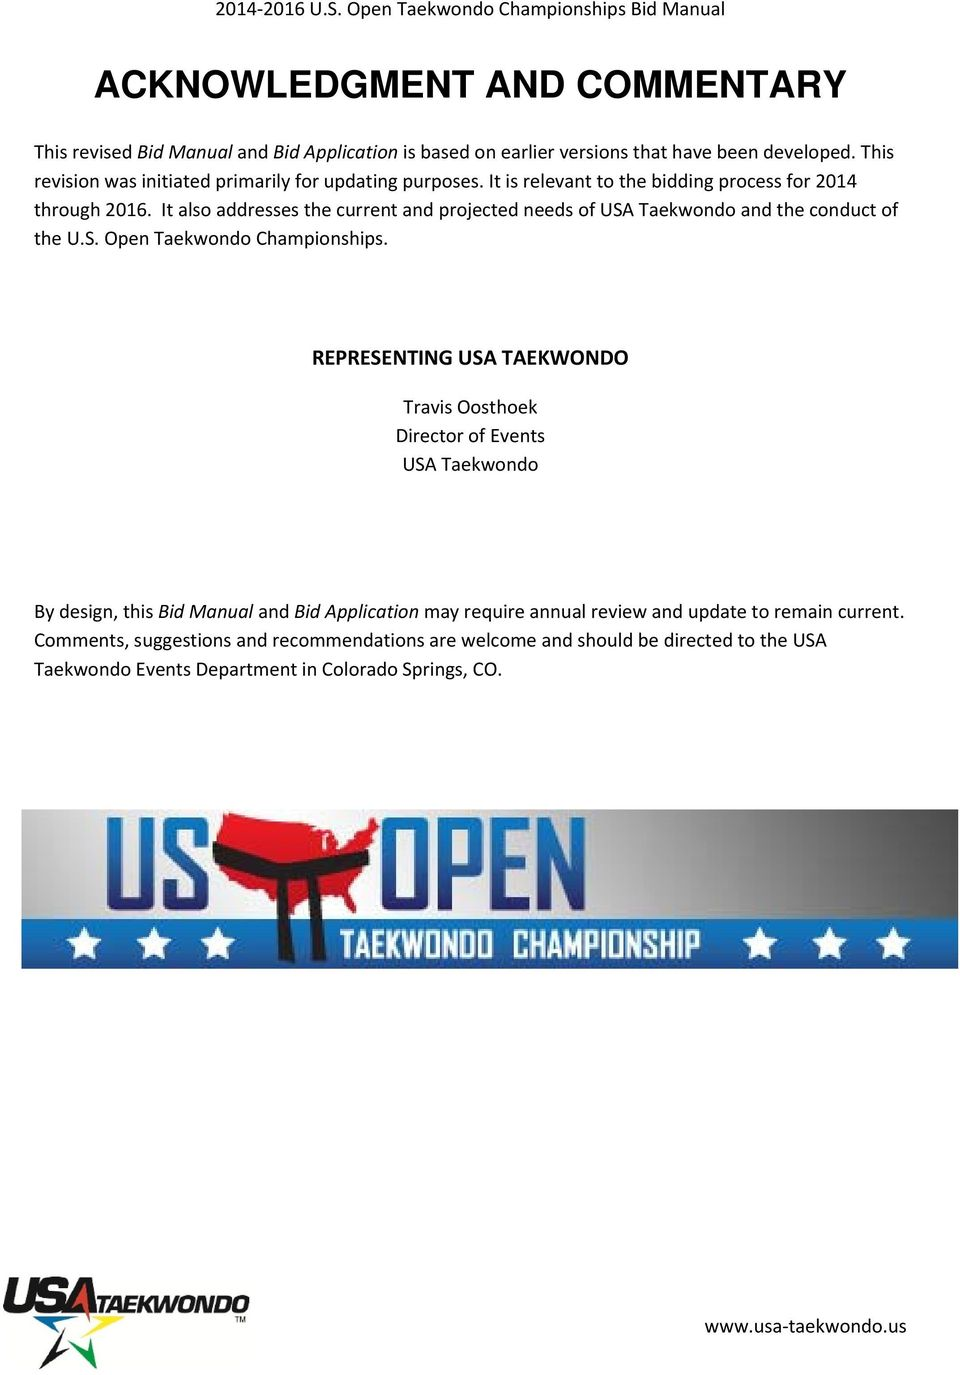 It also addresses the current and projected needs of USA Taekwondo and the conduct of the U.S. Open Taekwondo Championships.